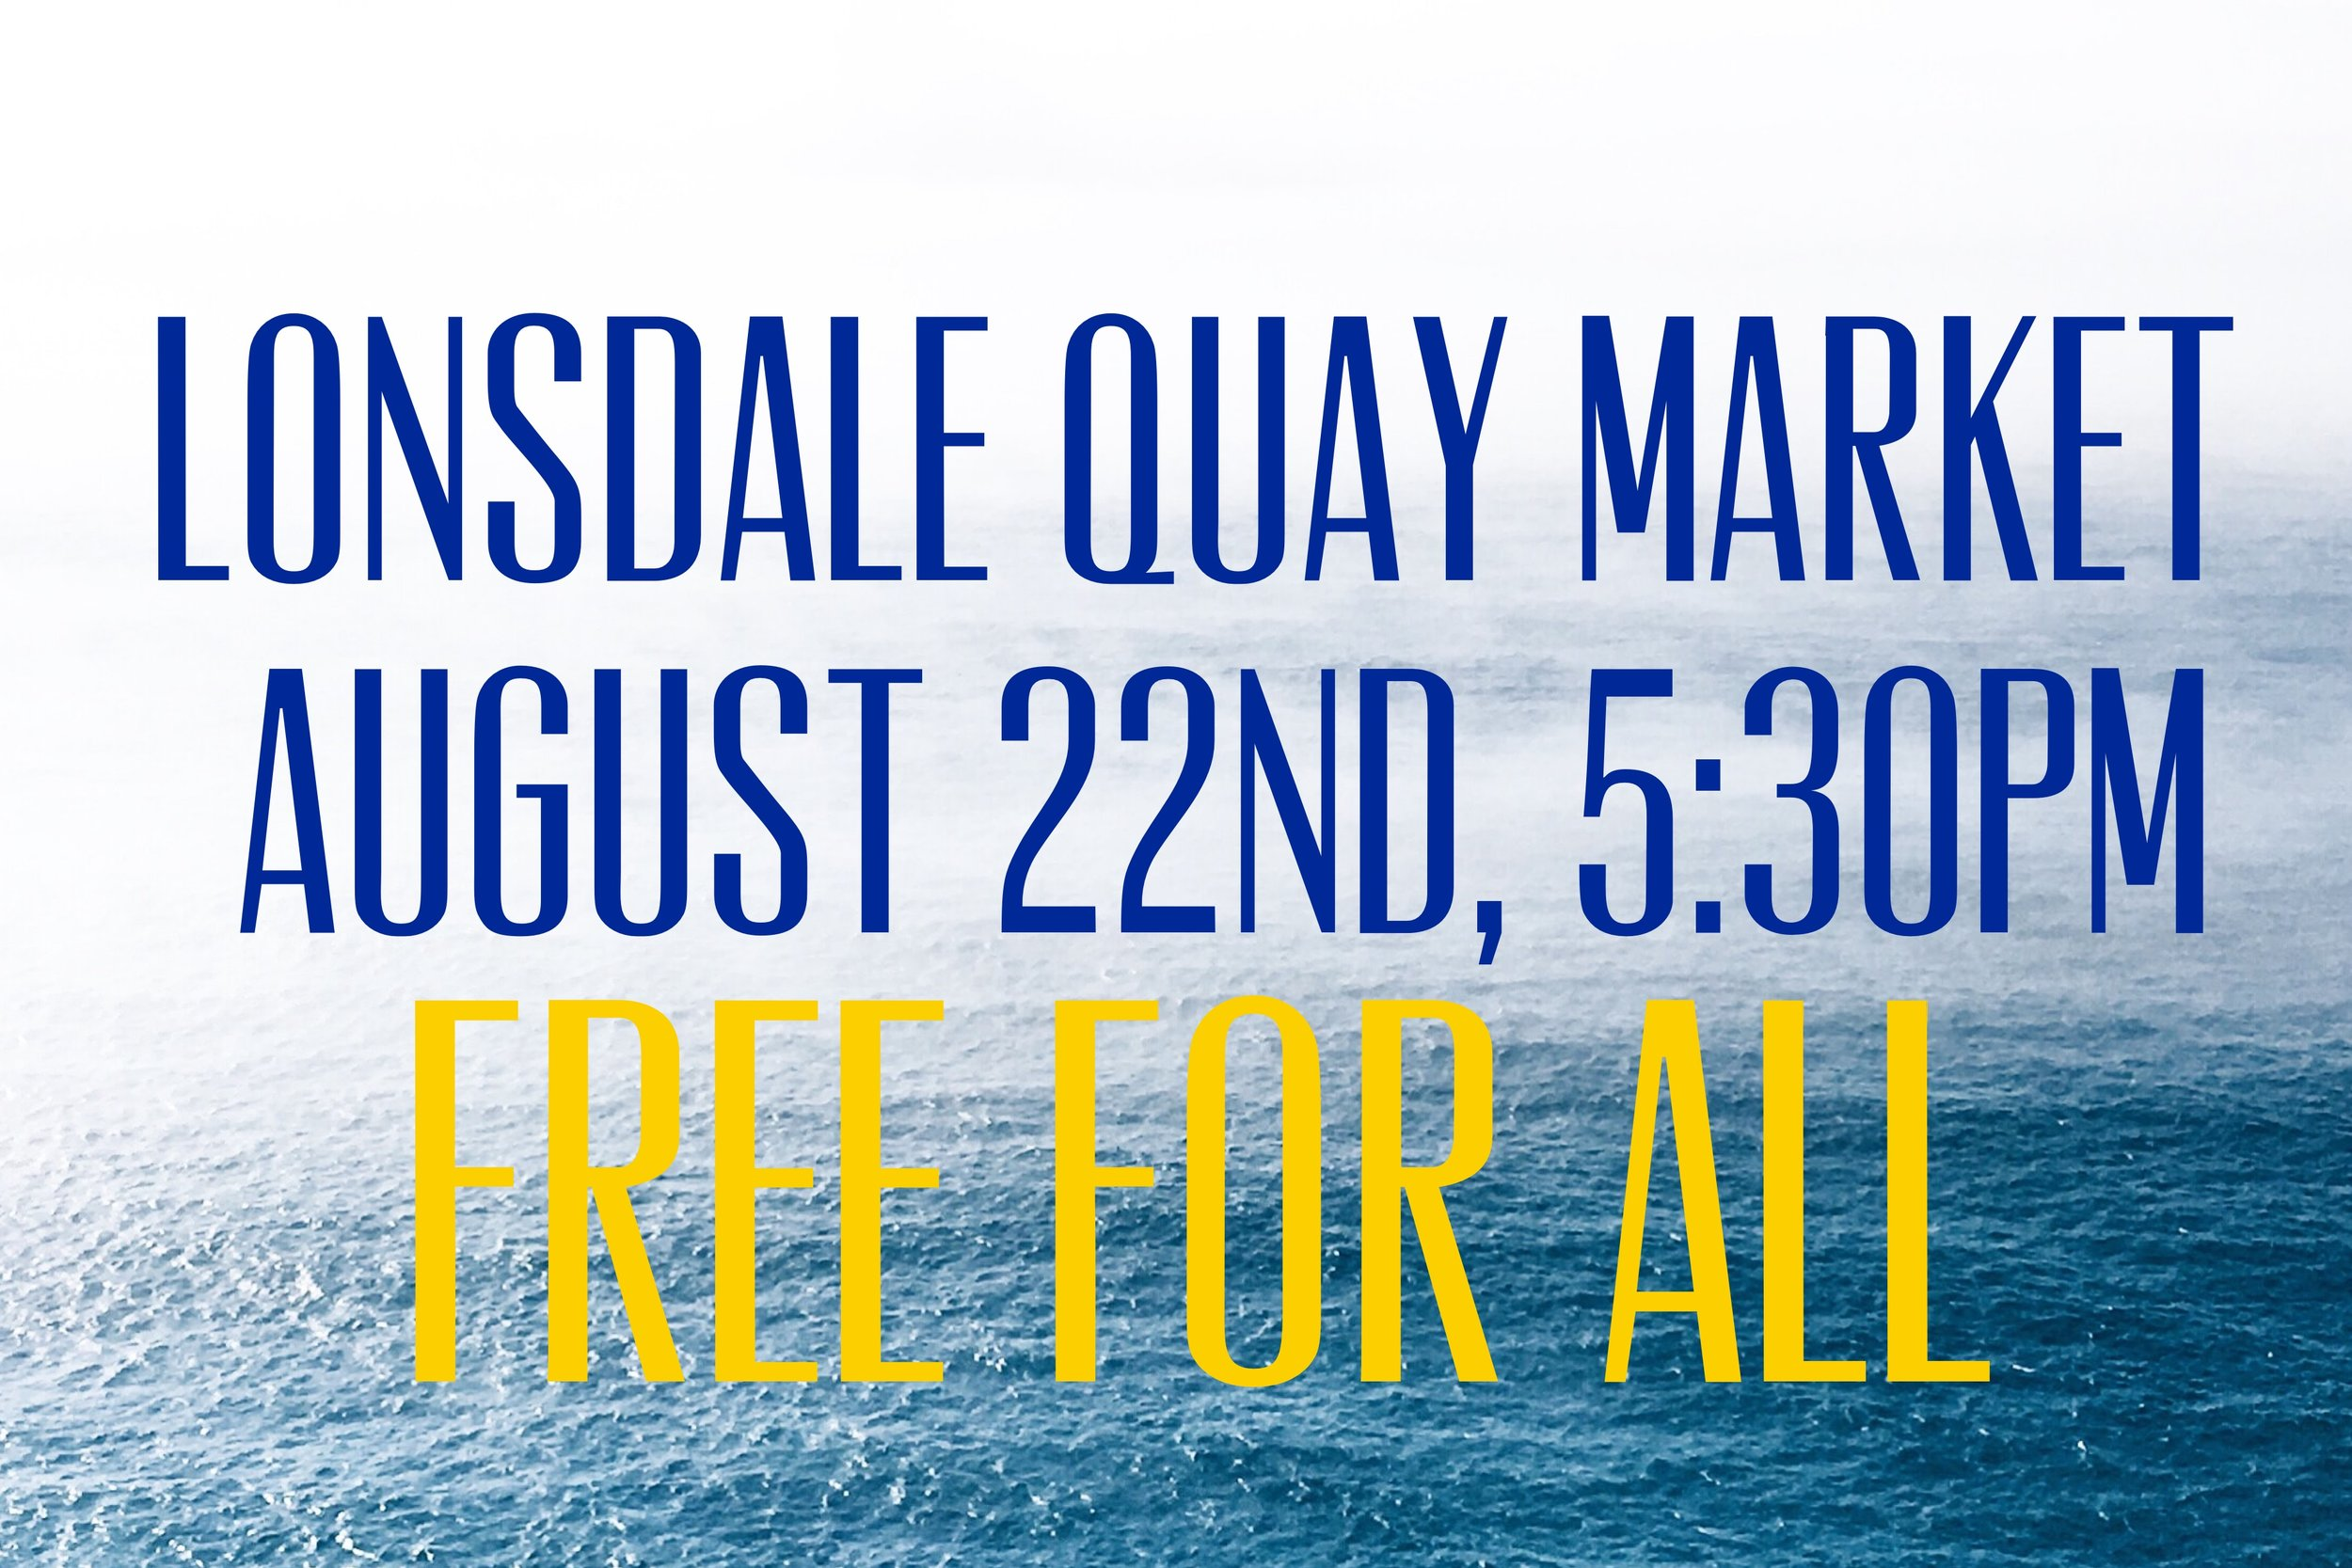 Waterfront Bliss - FREE FOR ALLbring your own mat, meet at the waterfront!see you there.namaste.